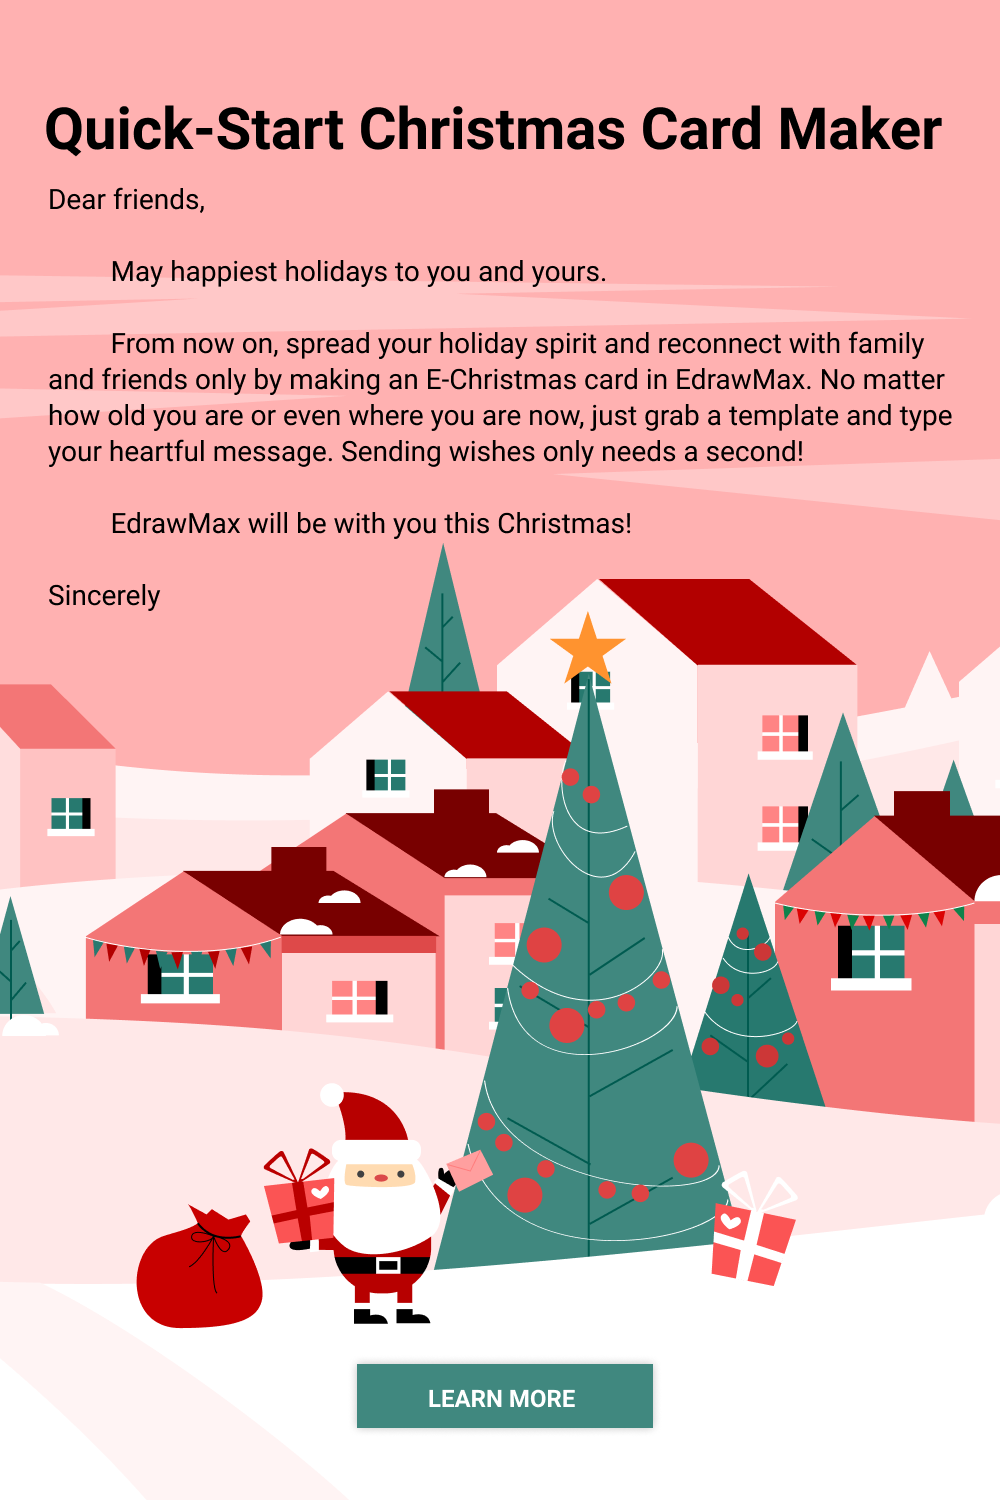 Free Online Christmas Card Maker Edrawmax Christmas Card Maker Christmas Card Online Christmas Card Templates Free